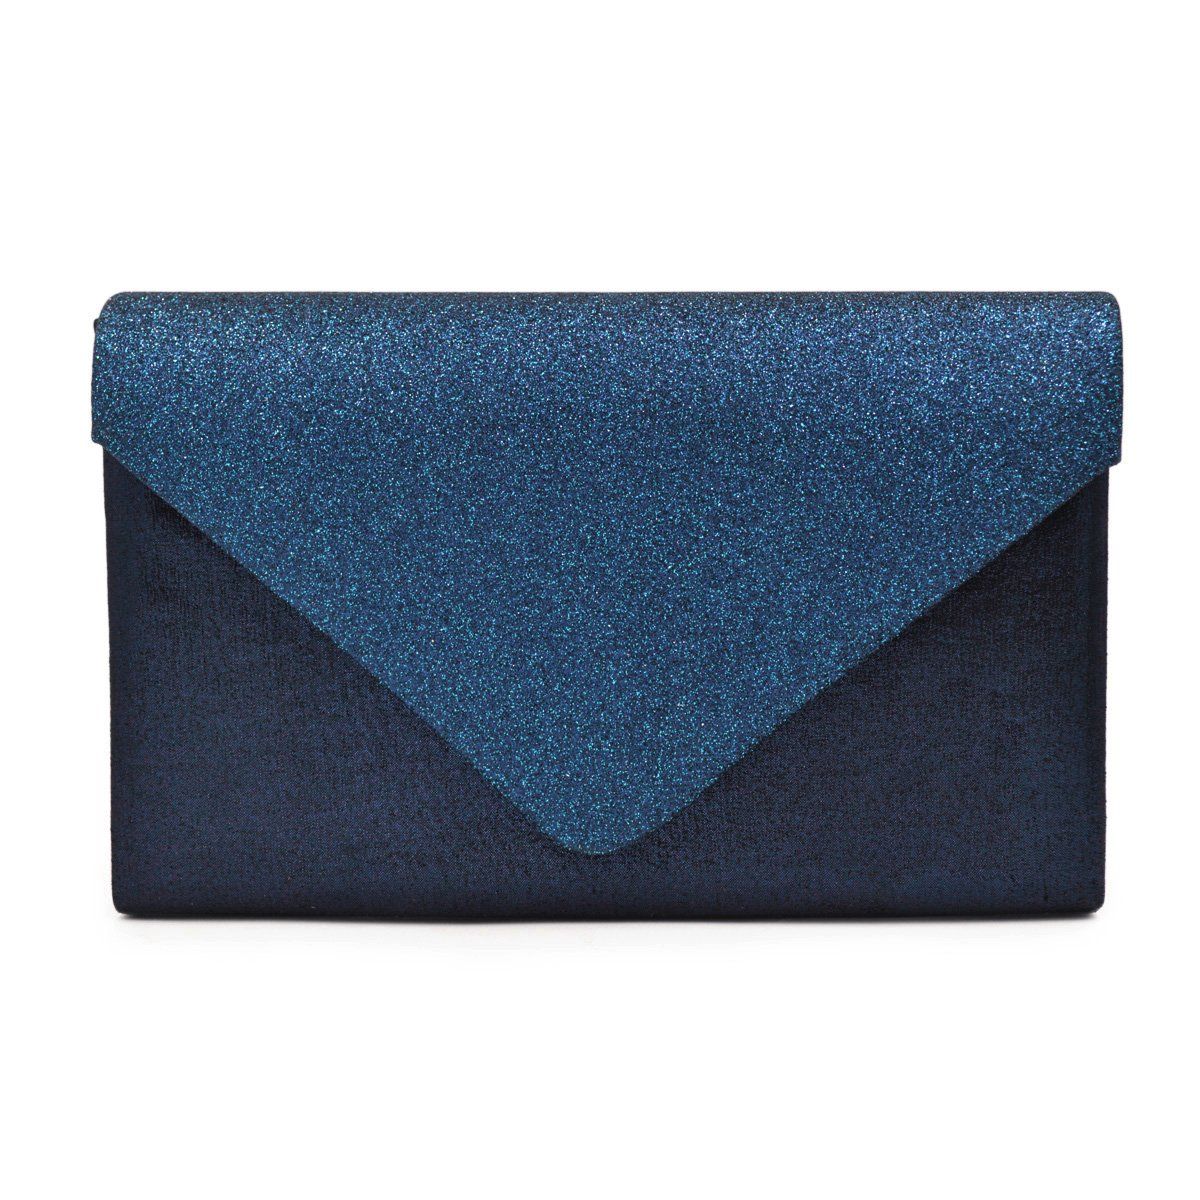 Premium Glitter Front PU Leather Envelope Flap Clutch Evening Bag, Navy